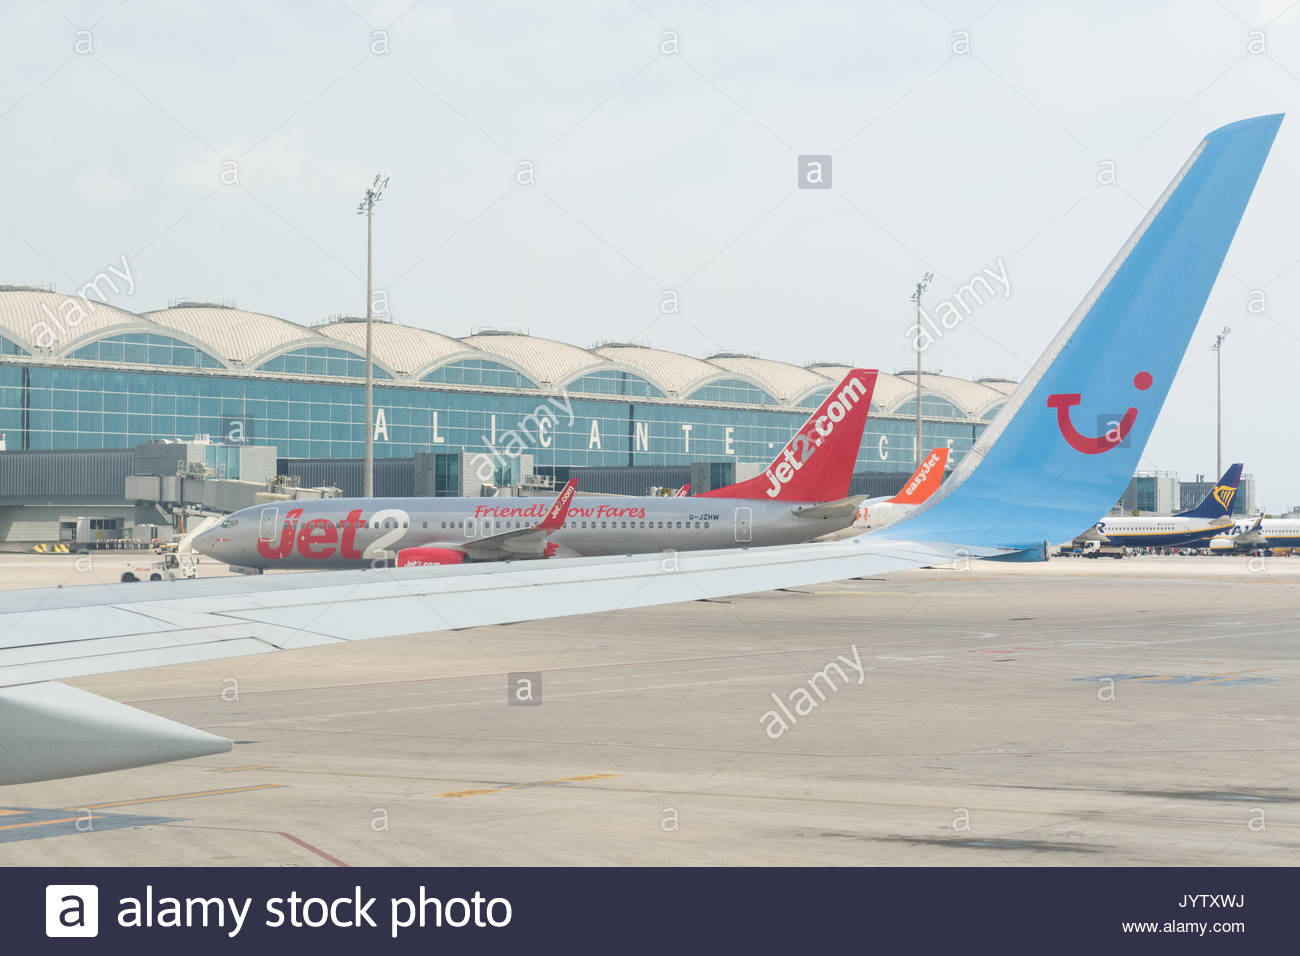 Alicante airport stock photos alicante airport stock - Stock uno alicante ...